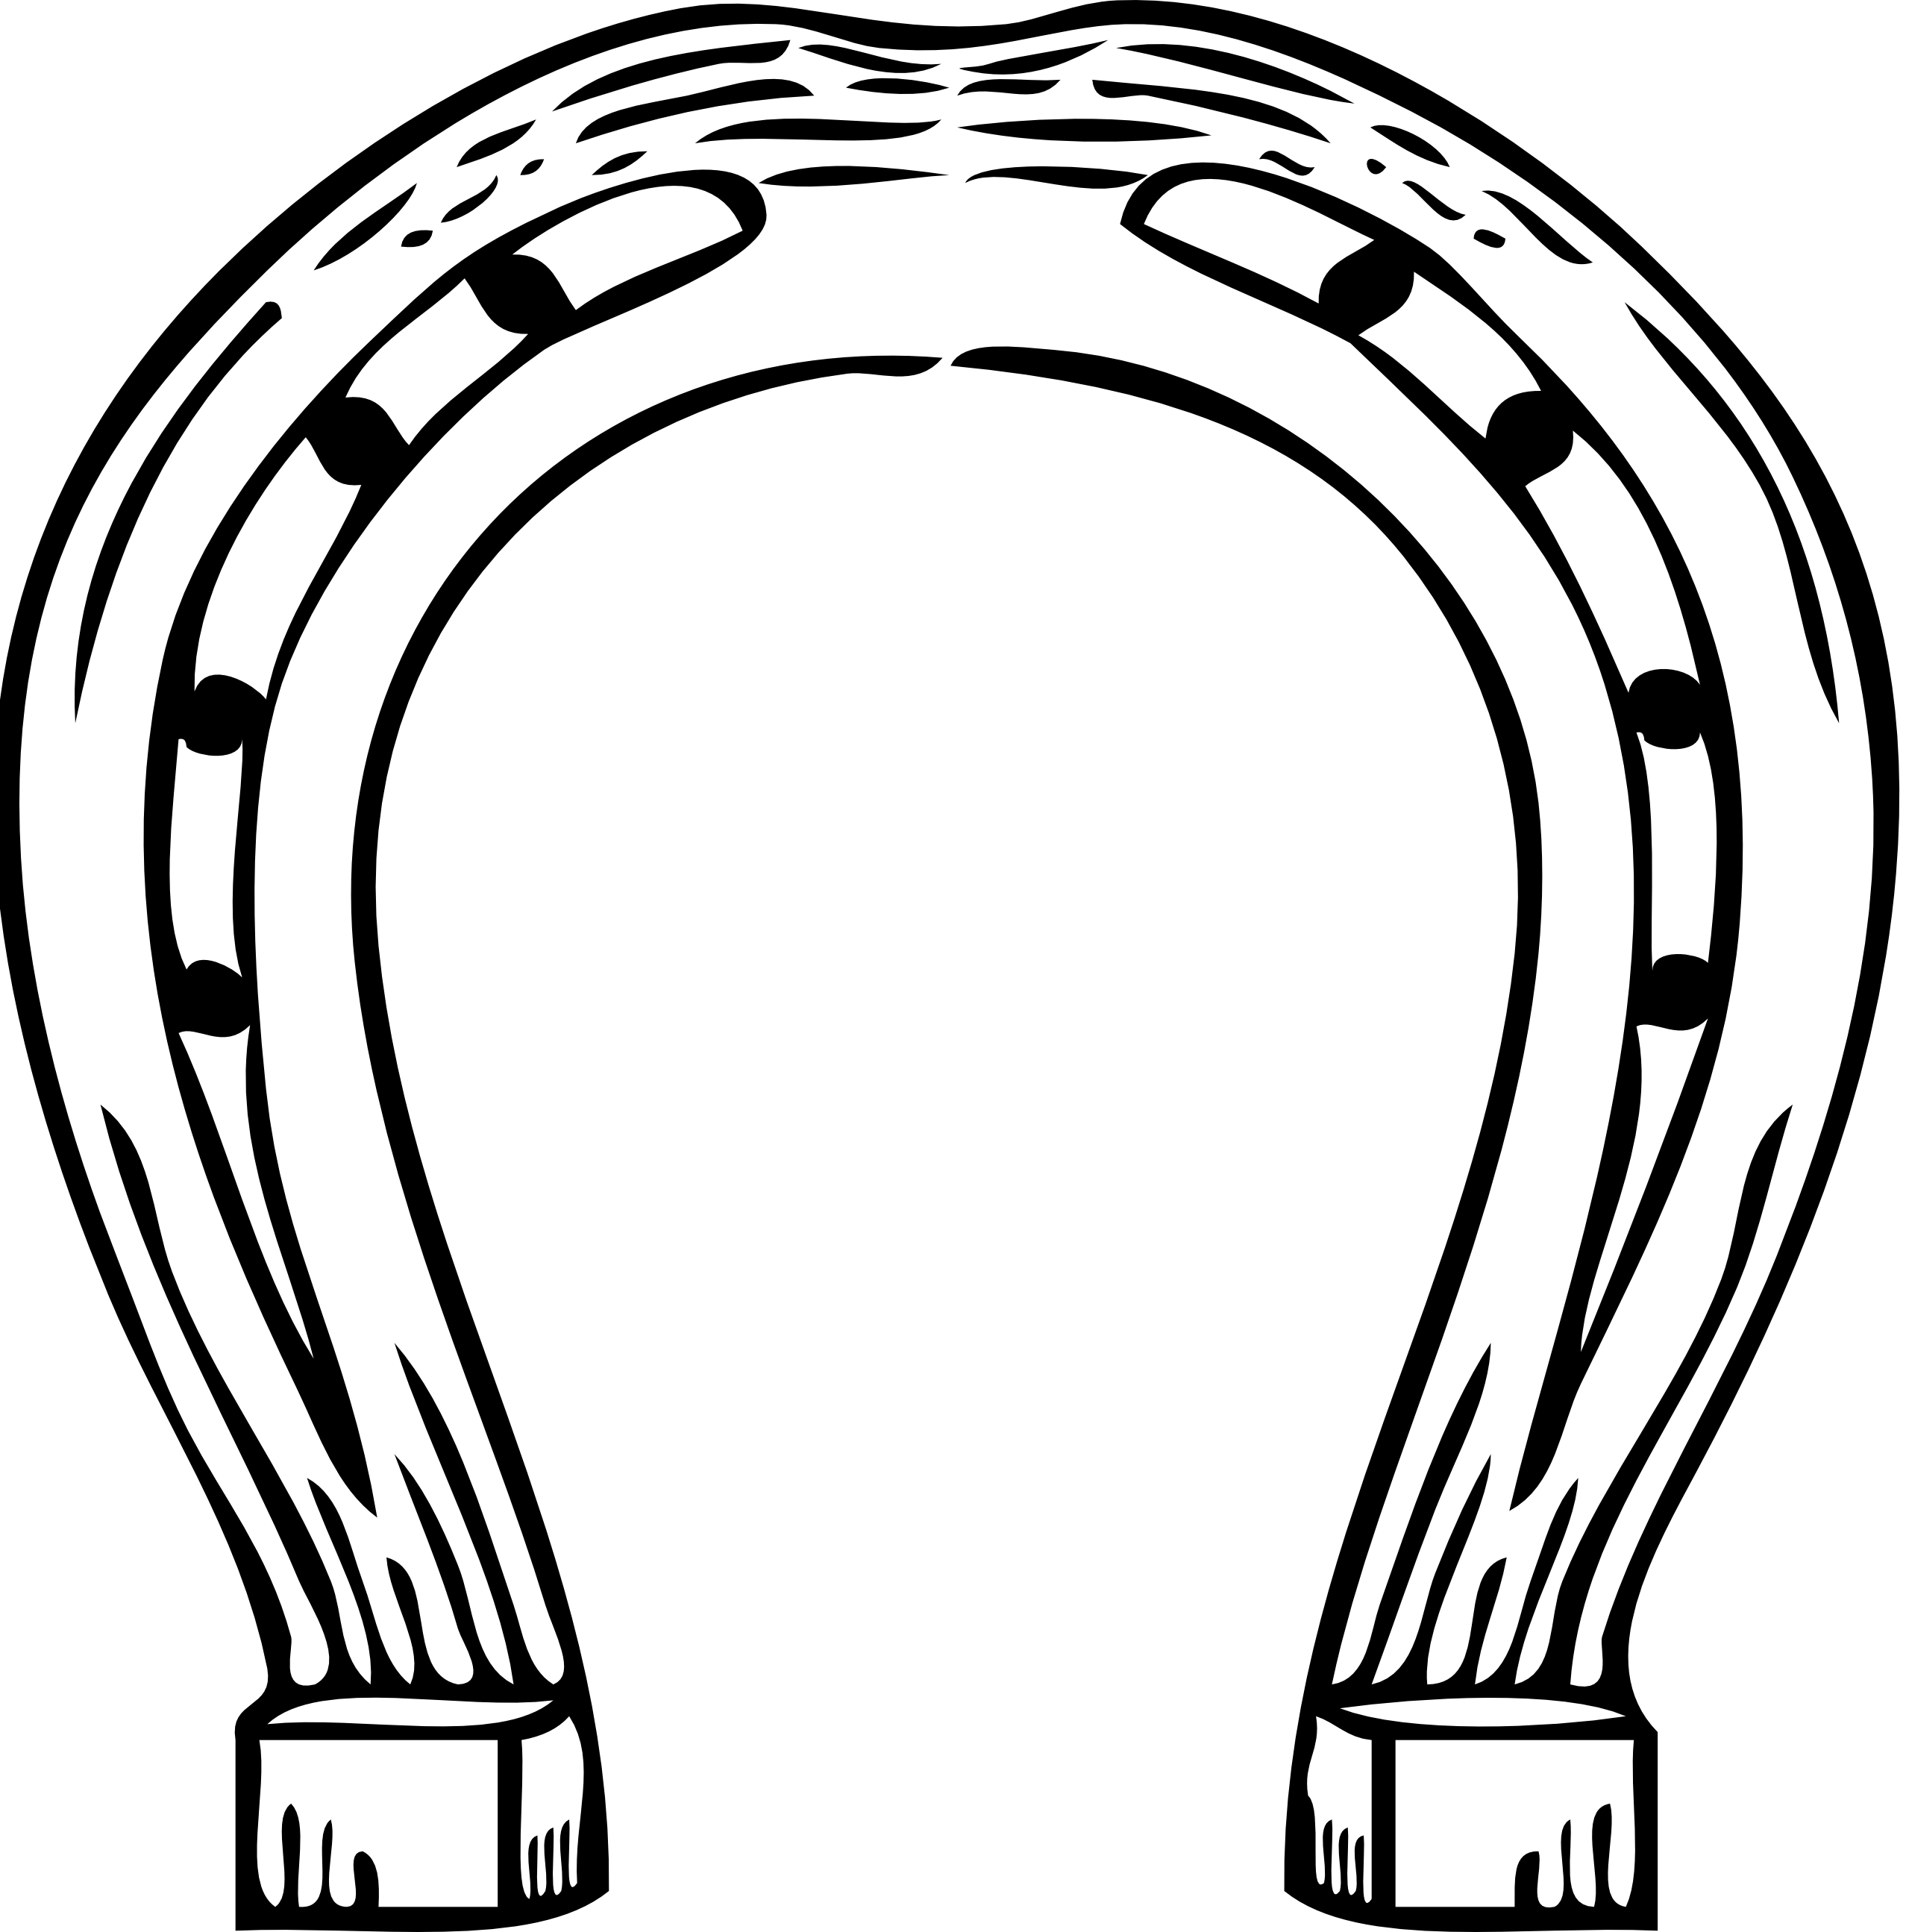 Horseshoe pit clipart vector transparent Free Horseshoe Cliparts, Download Free Clip Art, Free Clip ... vector transparent